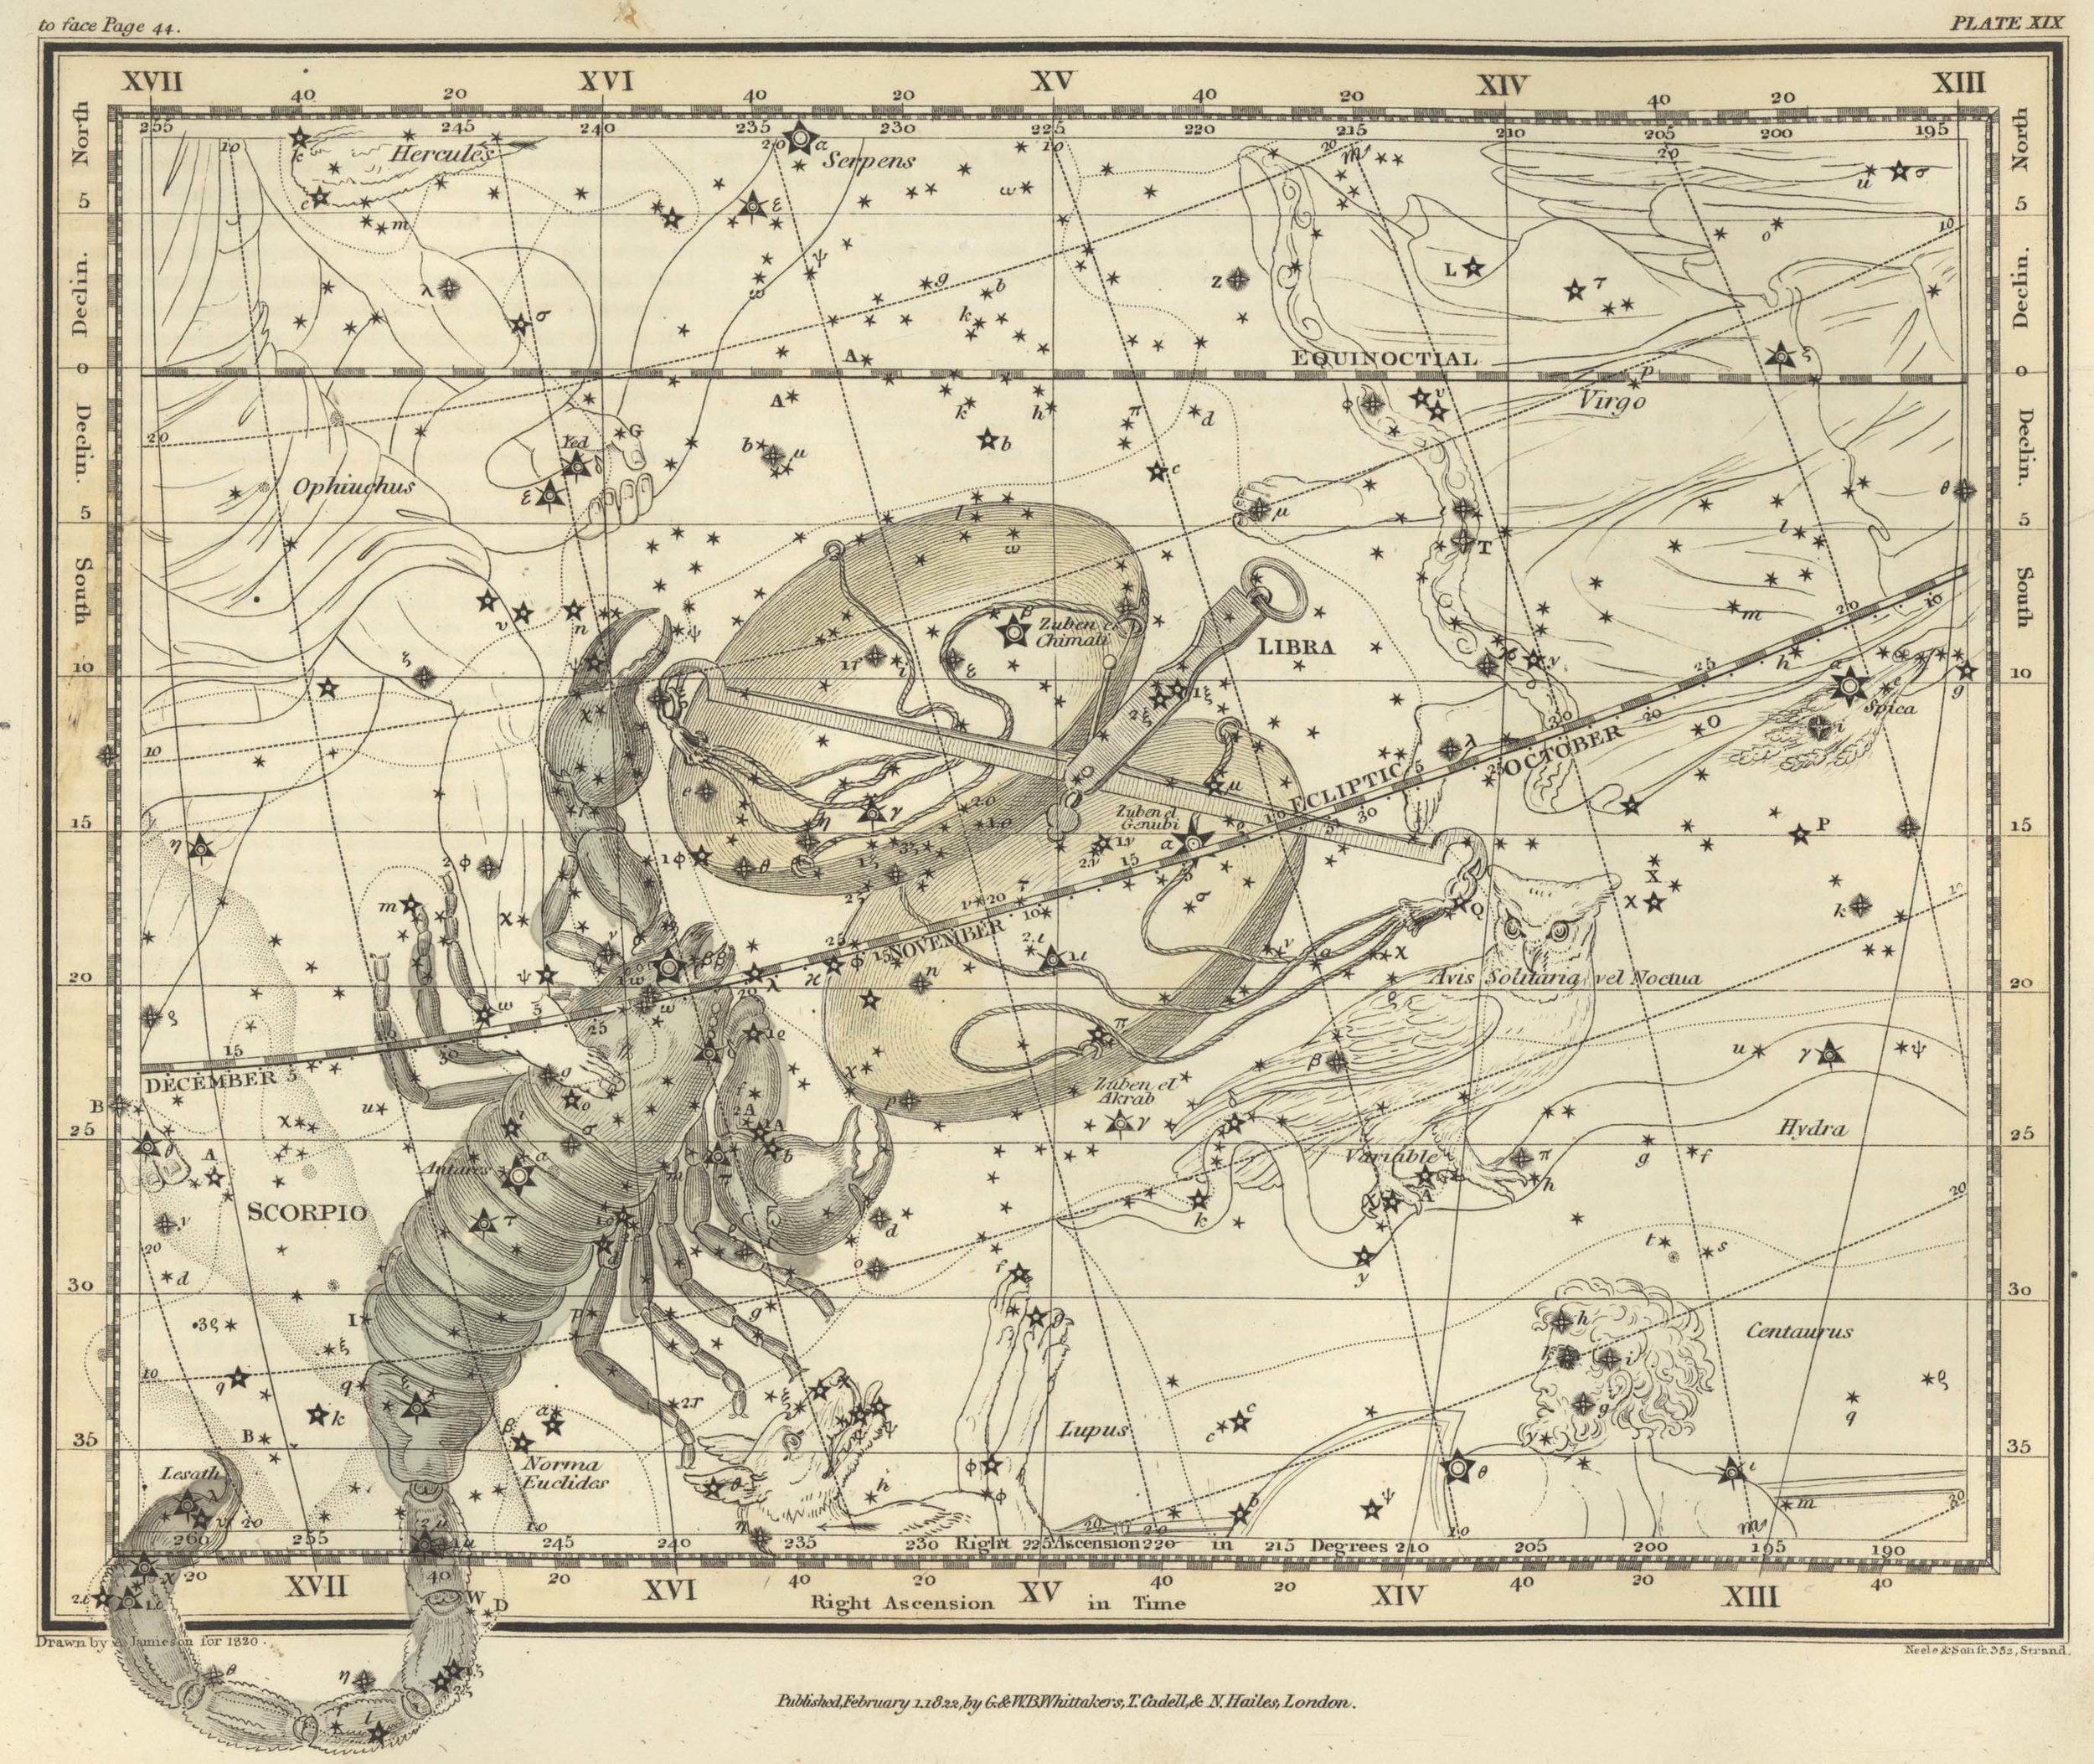 The   Celestial Atlas   of   Flamsteed   (1795)